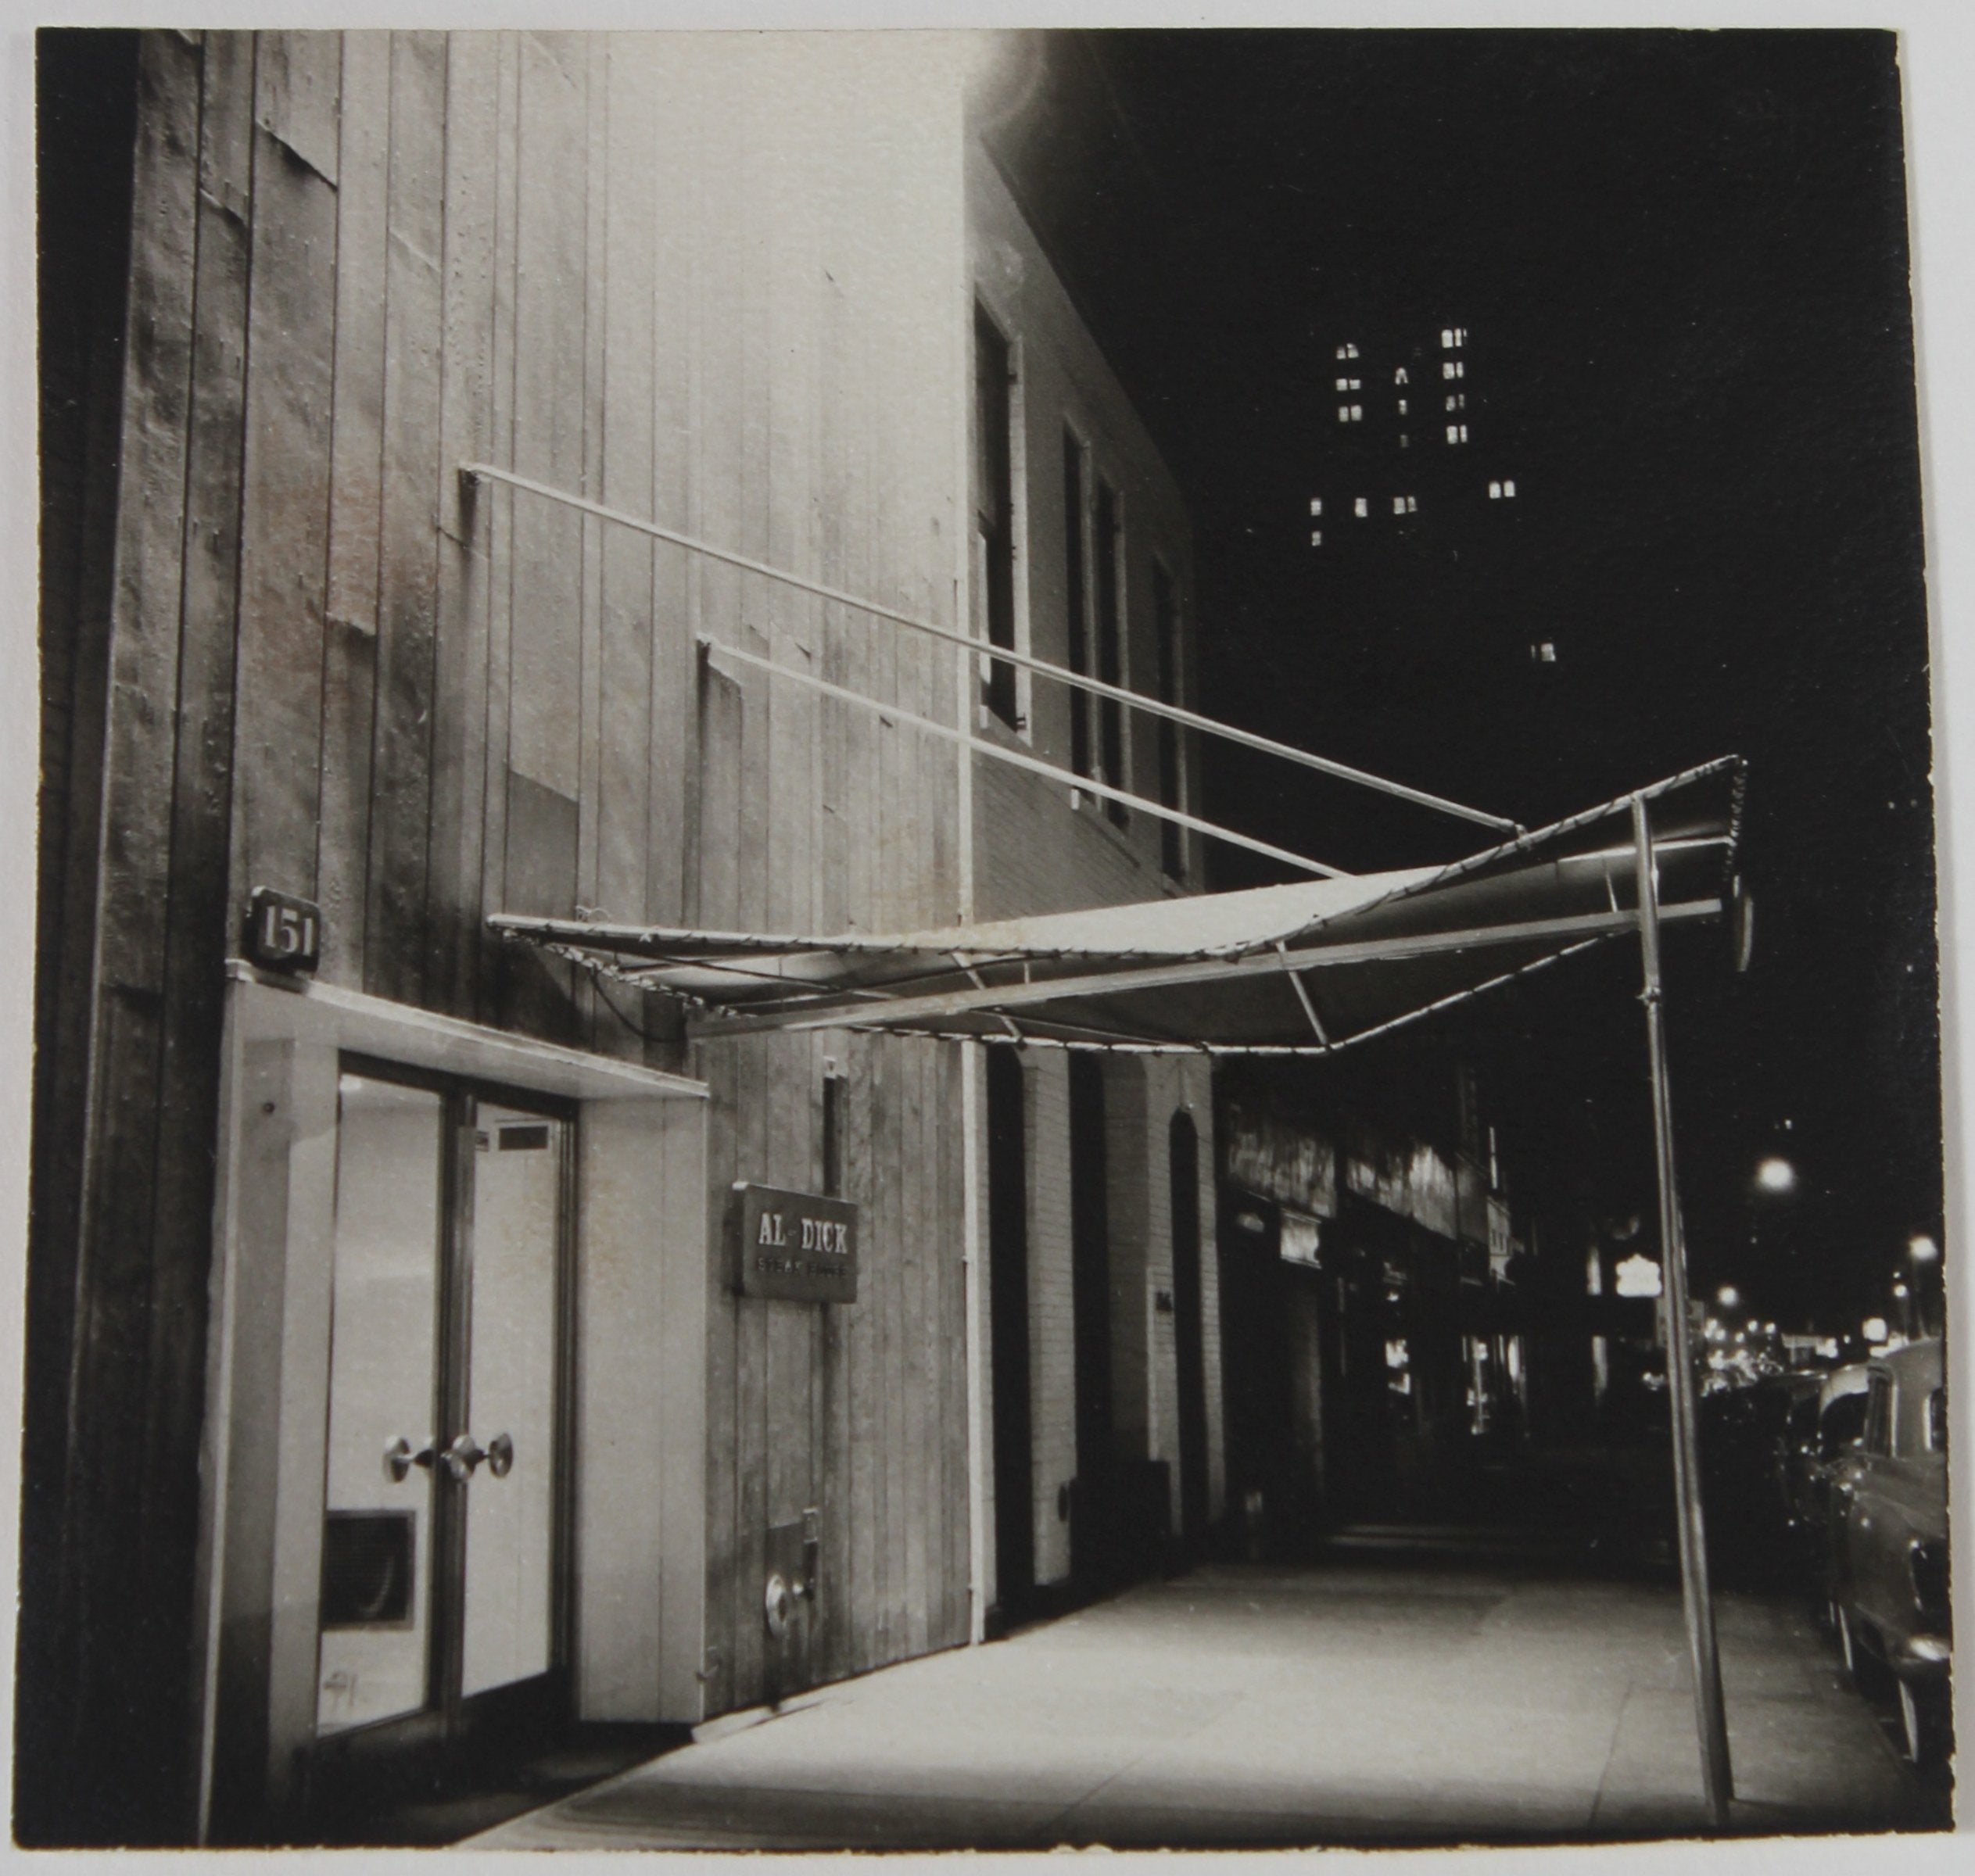 City Street at Night 1960s Black and White Photograph